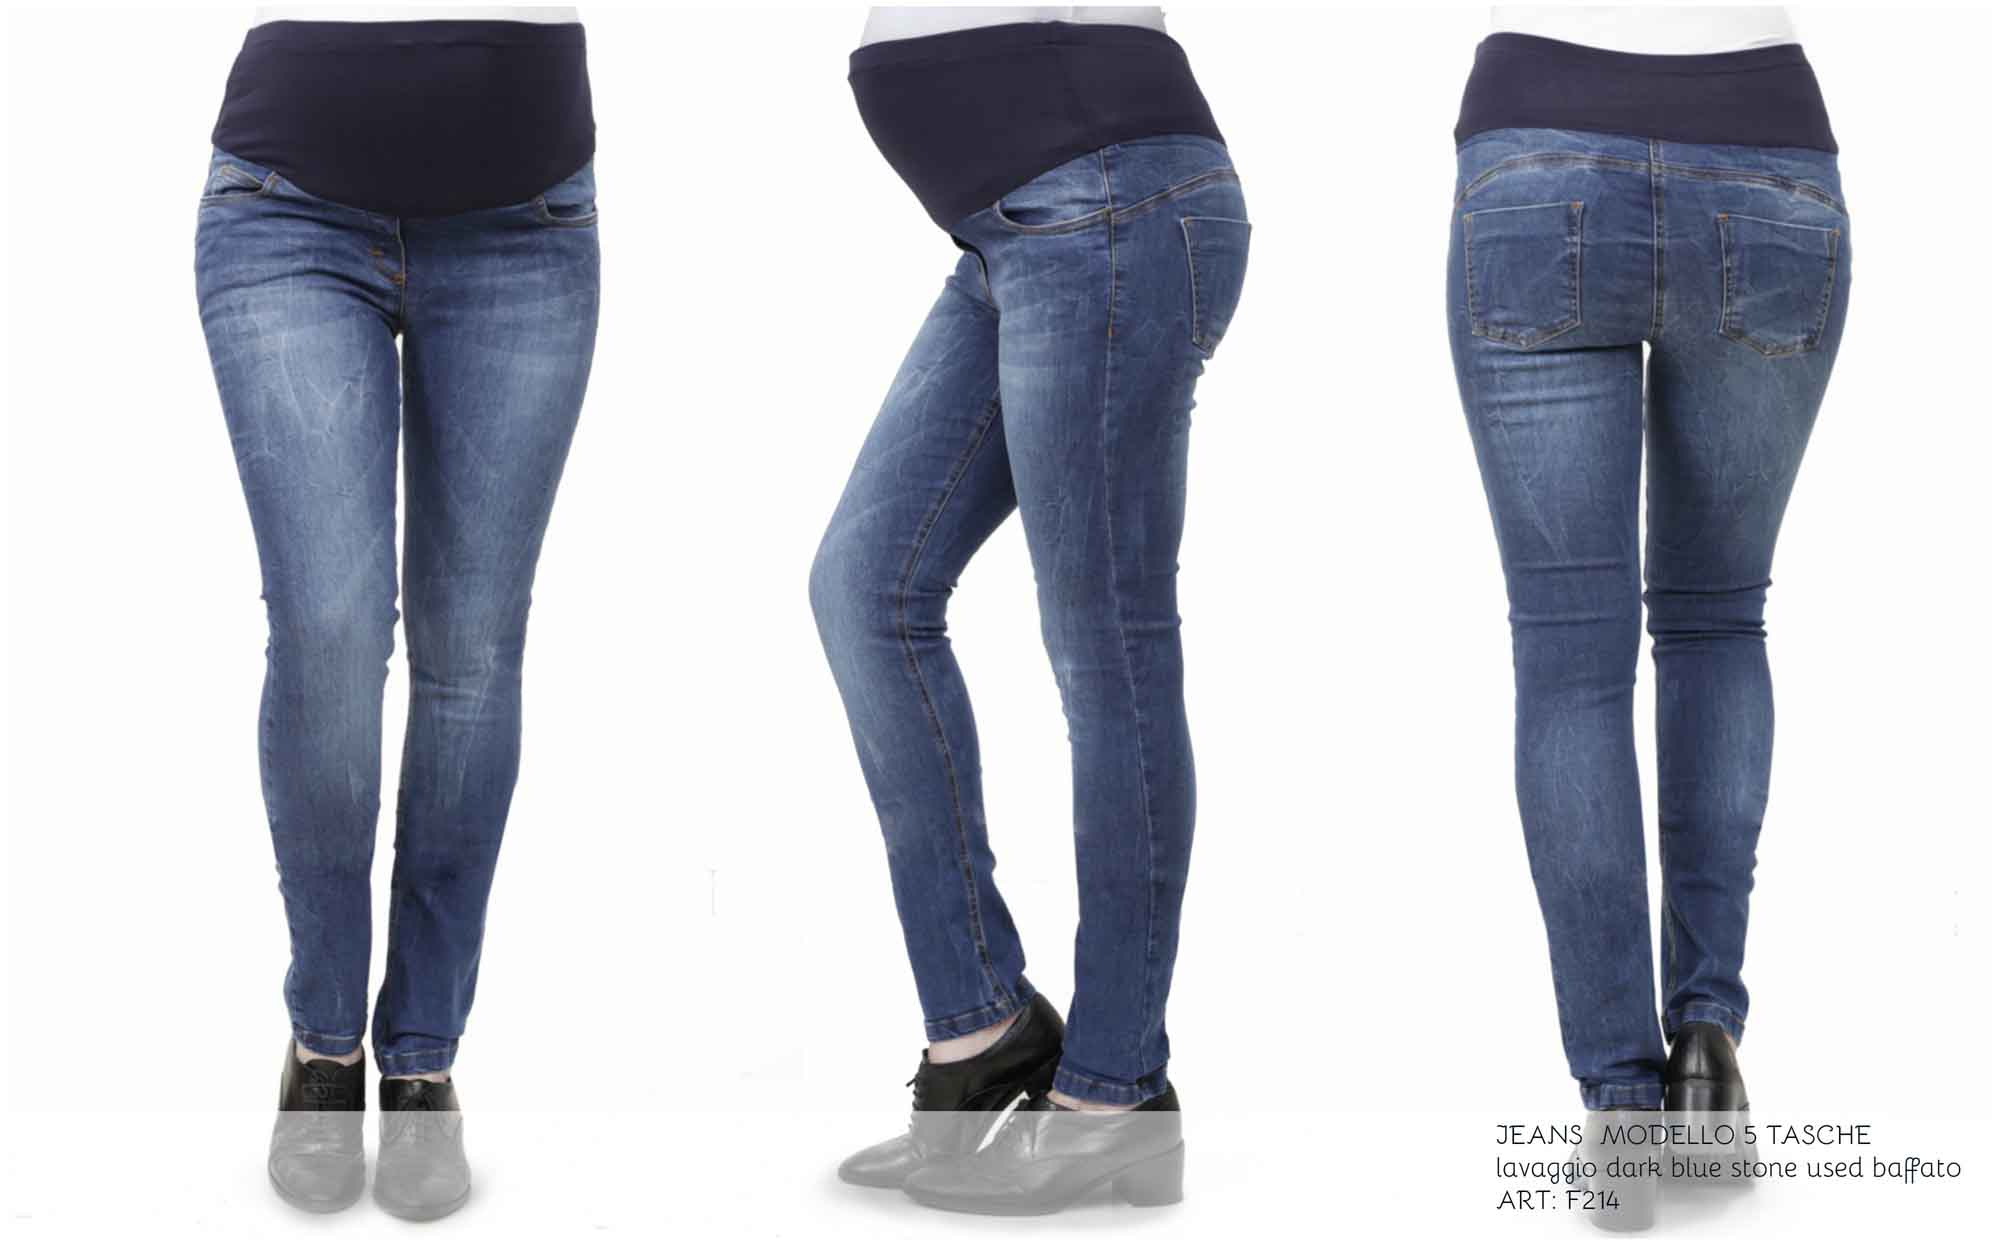 jeans premaman aderente